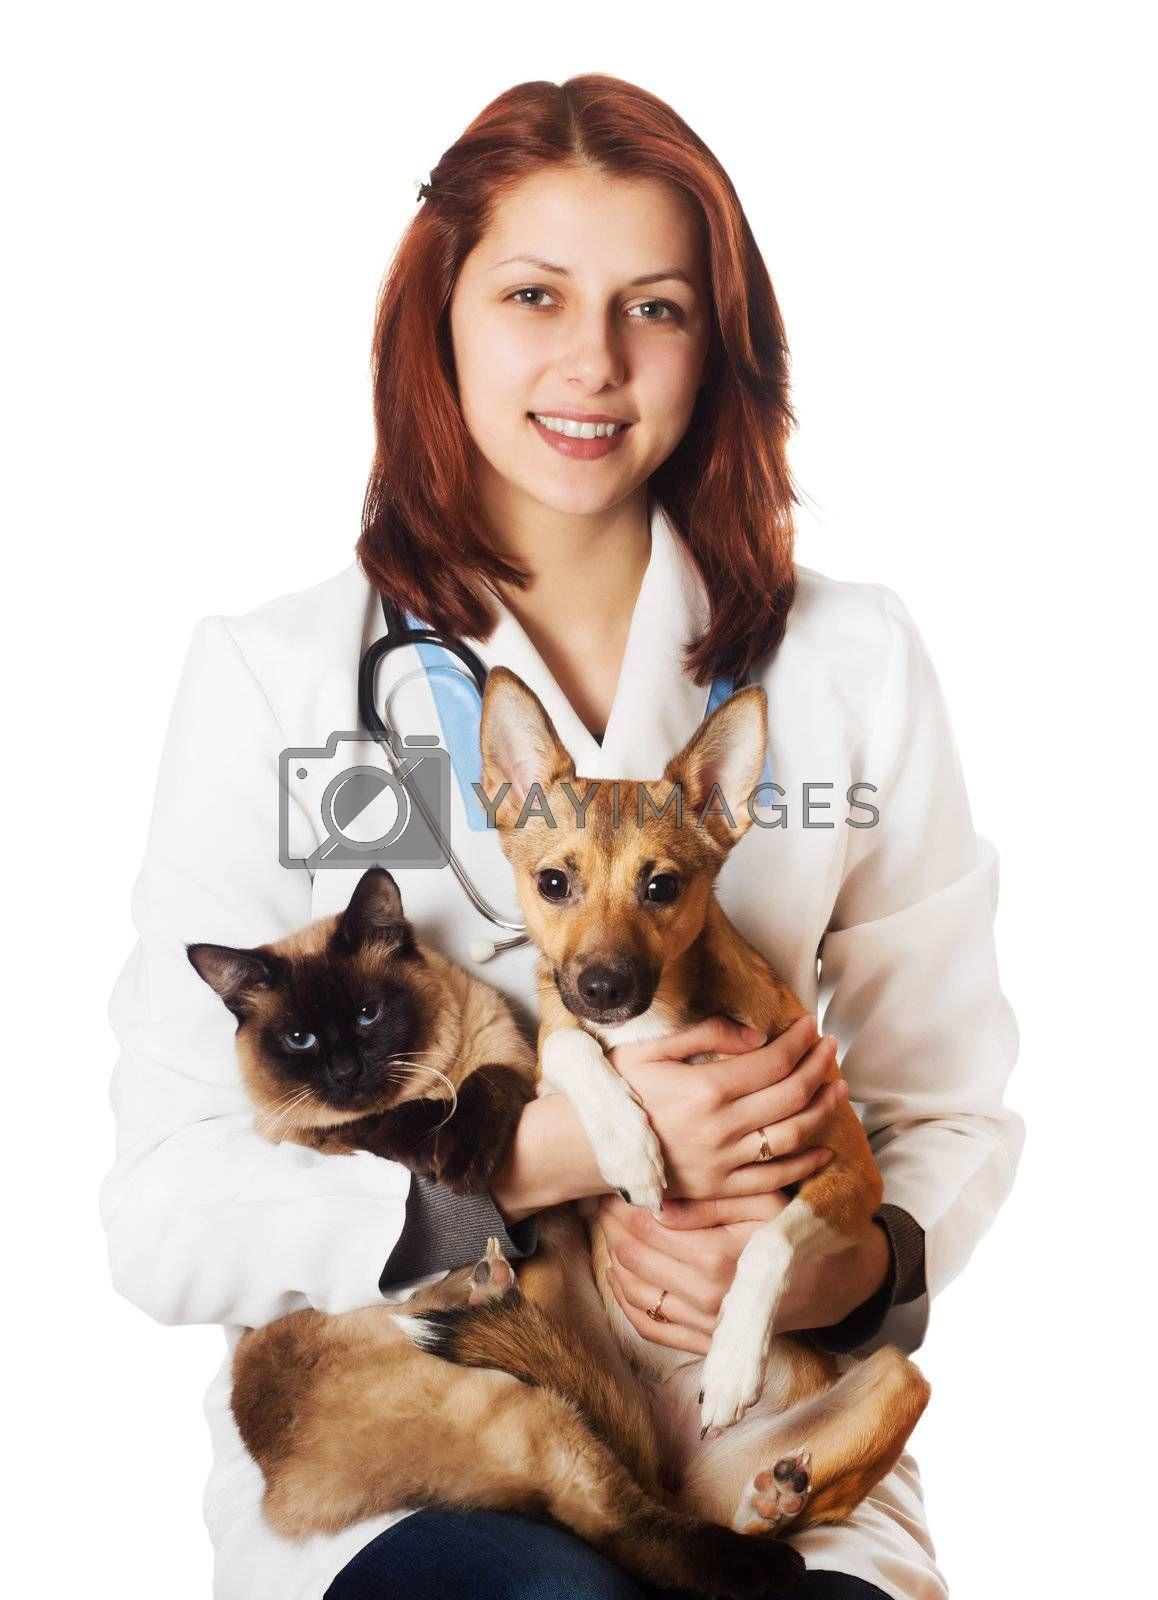 Woman vet with pets on a white background isolated by gurin oleksandr